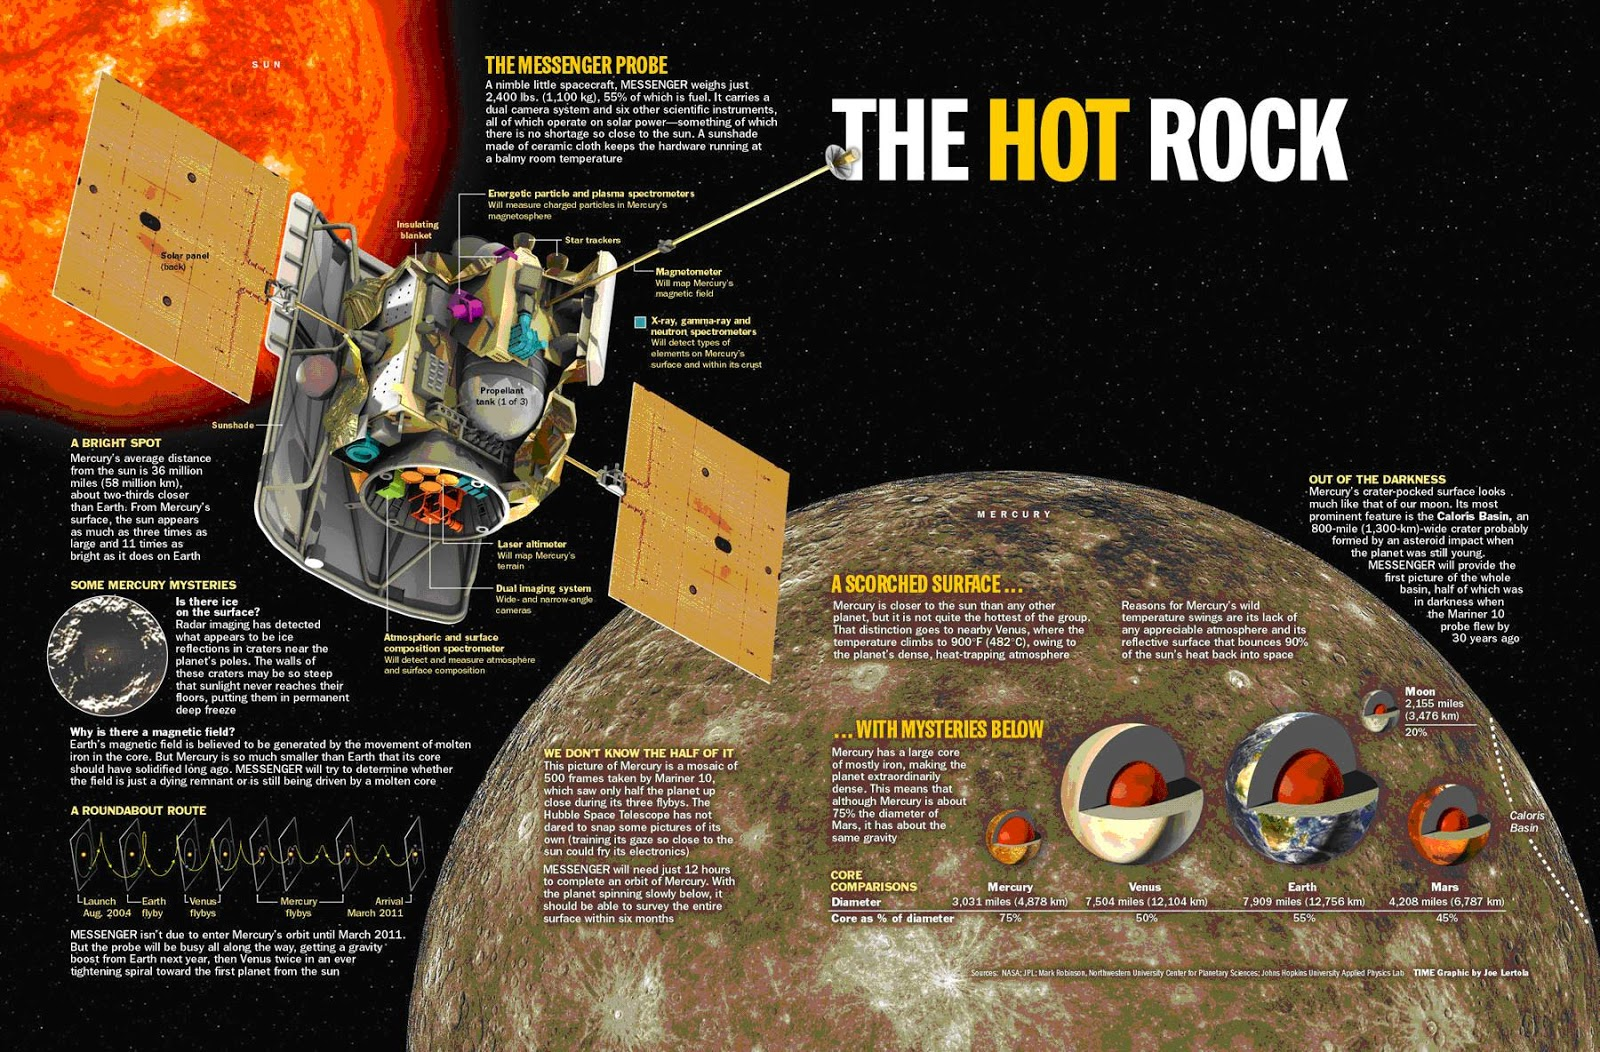 messenger spacecraft to mercury 2009 picture - HD 1800×1184